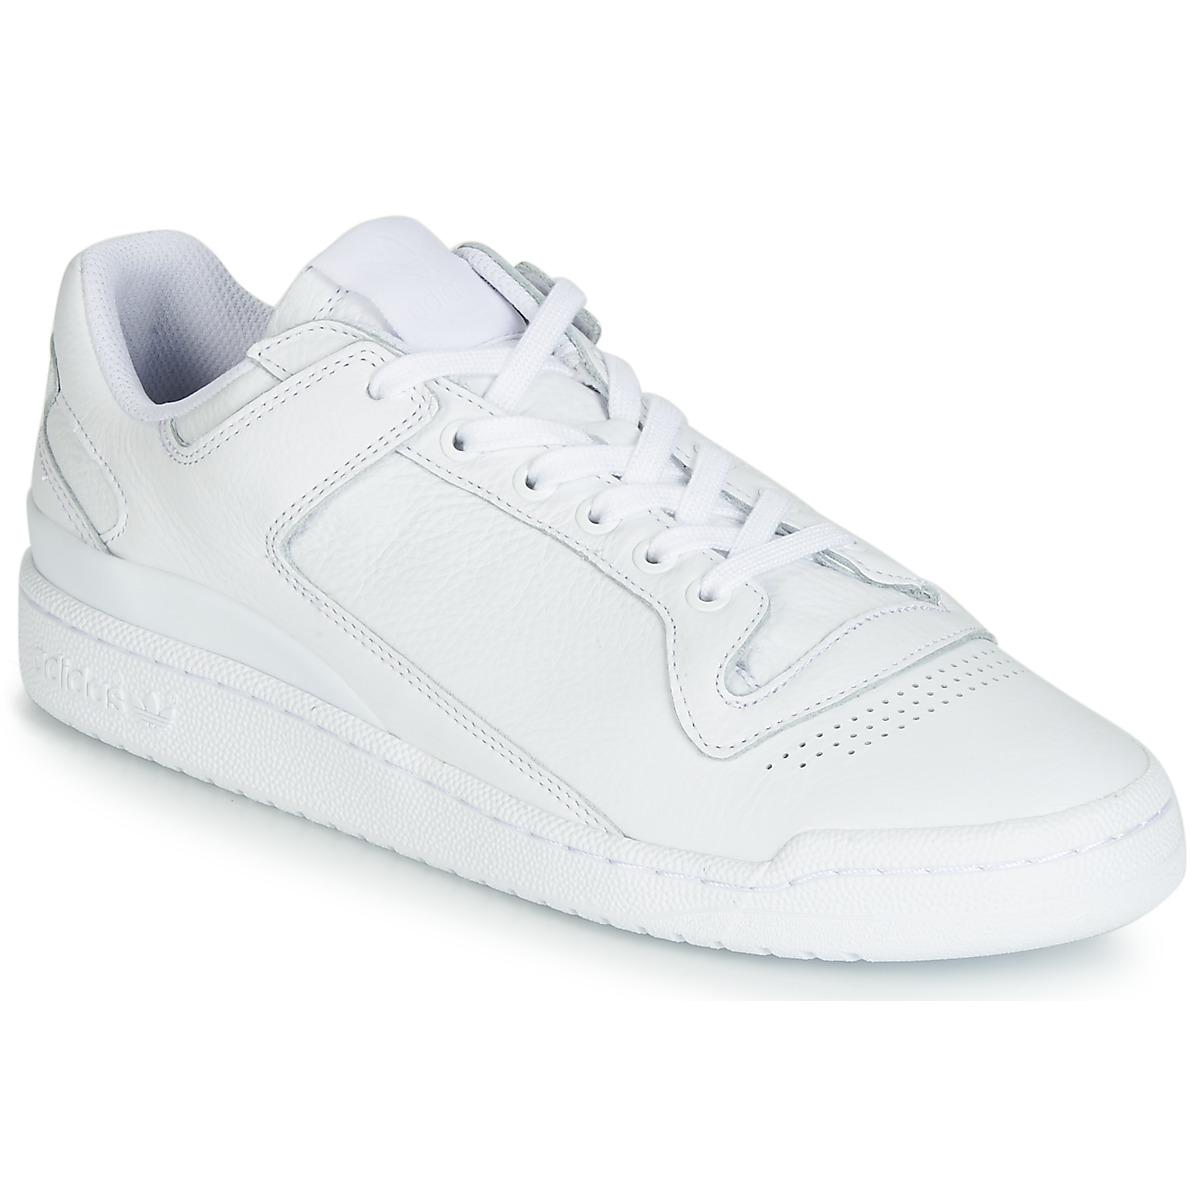 0d4f9f119c946f adidas Forum Lo Decon Shoes (trainers) in White for Men - Lyst